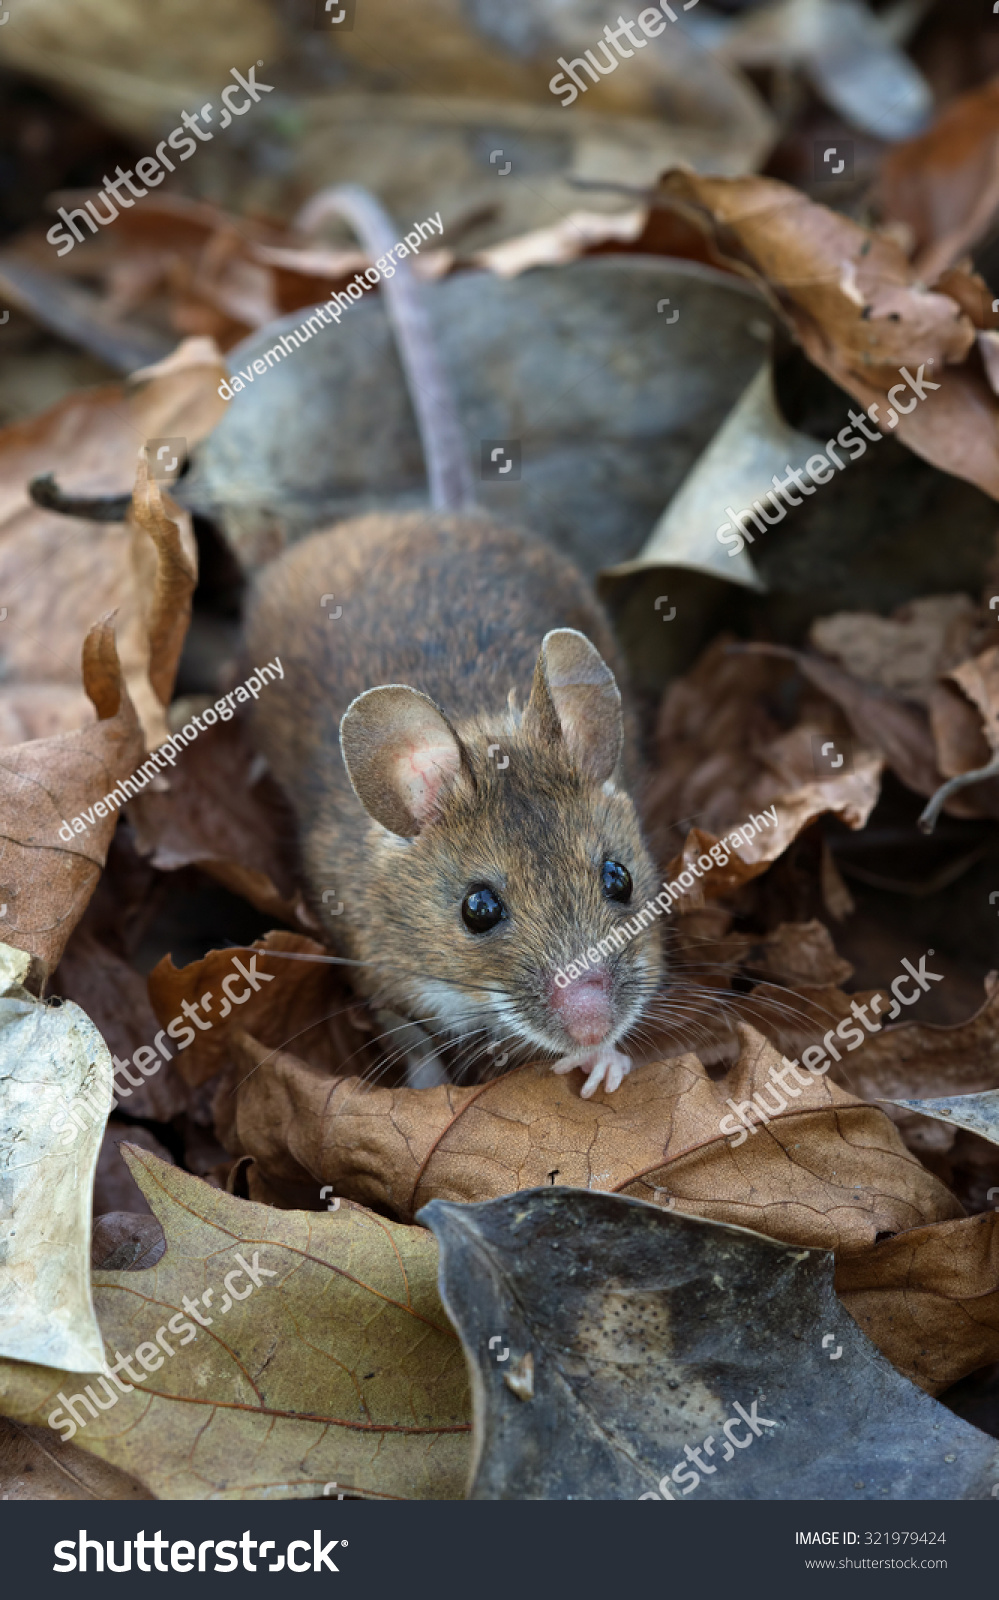 Wood mouse in deep leaf litter on forest floor mouse wood for Mice in between floors